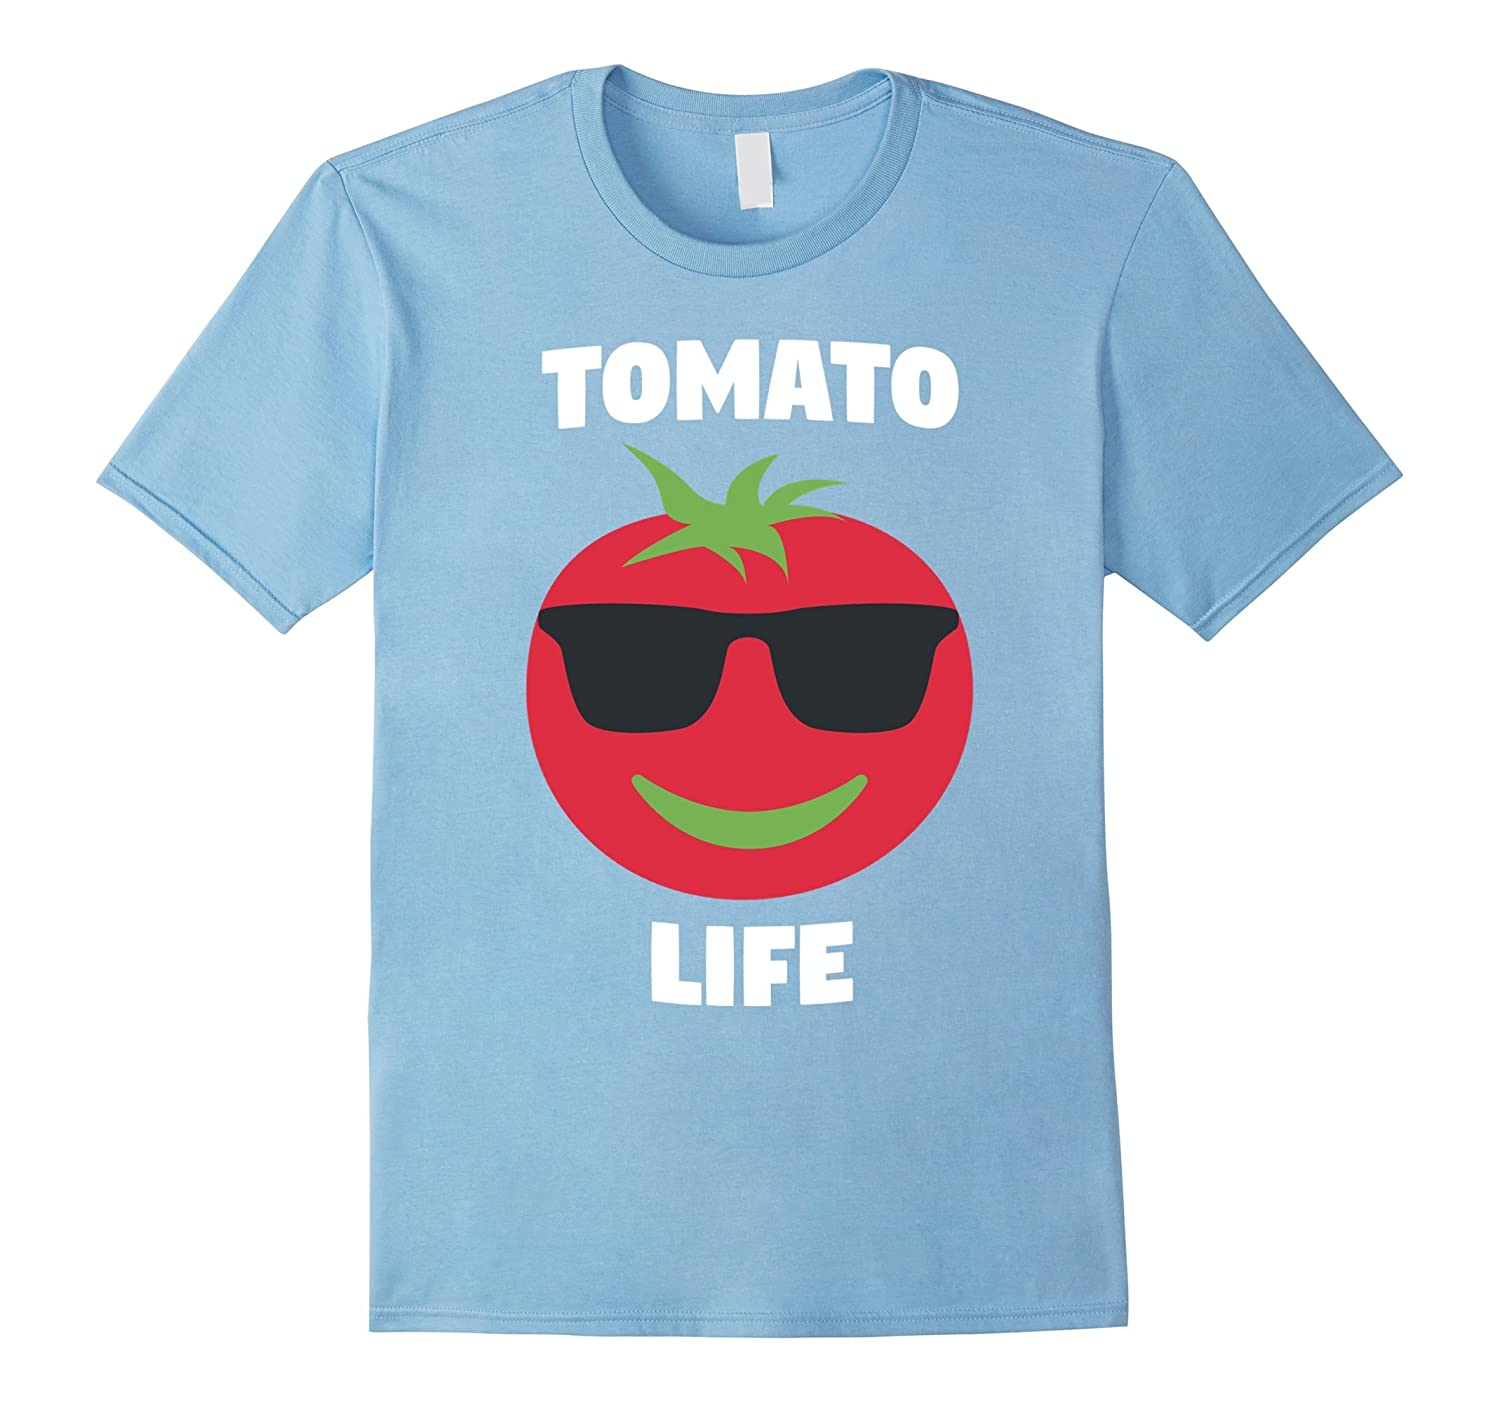 Tomato Life - Funny Sunglasses Tomato T Shirt for Vegetarian-BN